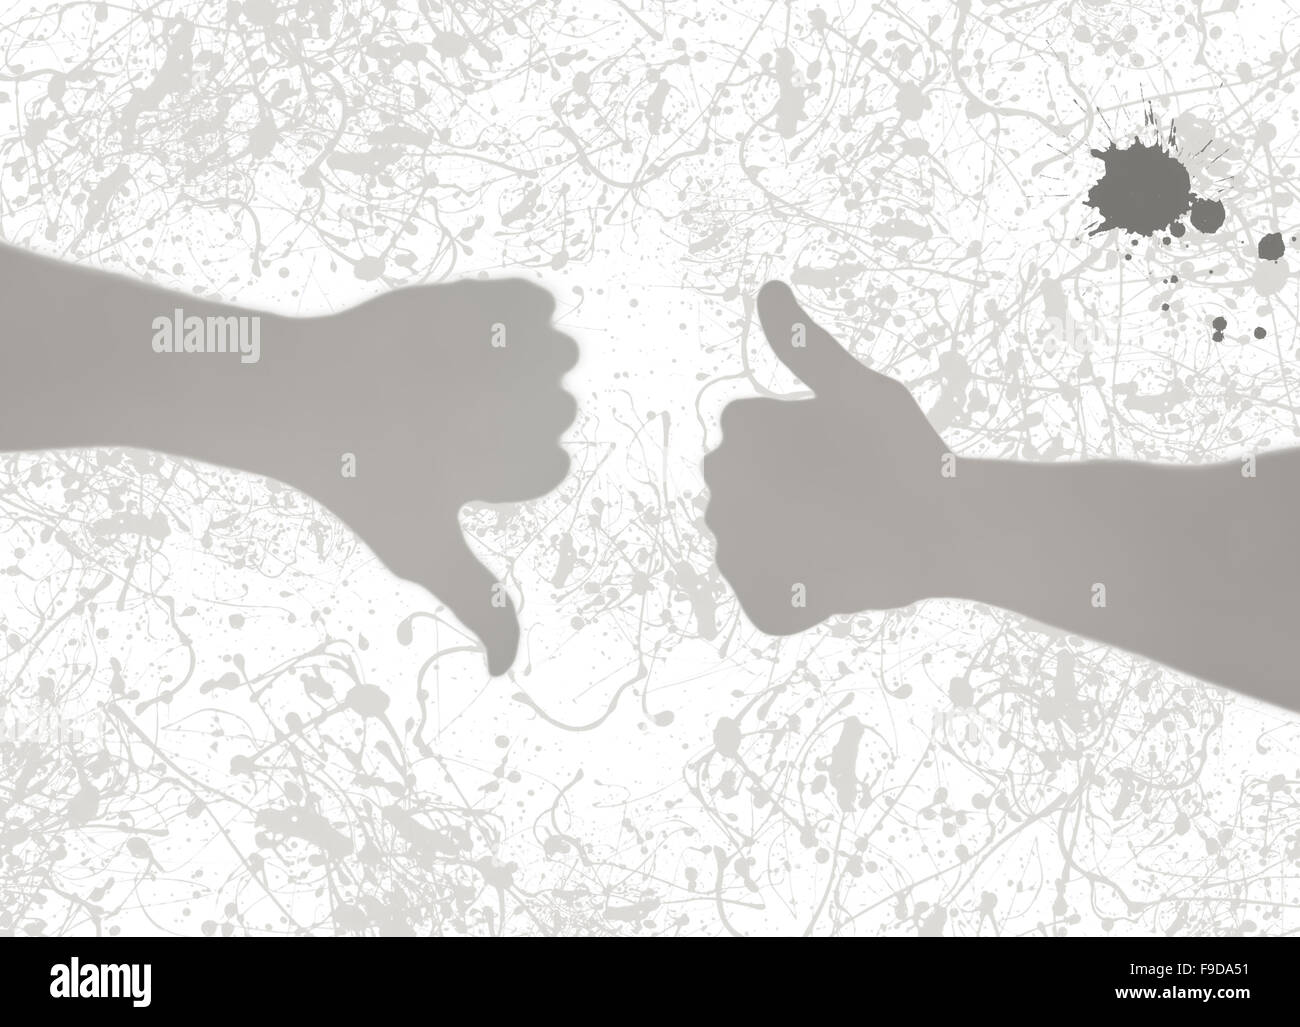 Gray shadows of two hands - thumbs up and thumbs down. Shadow play. - Stock Image